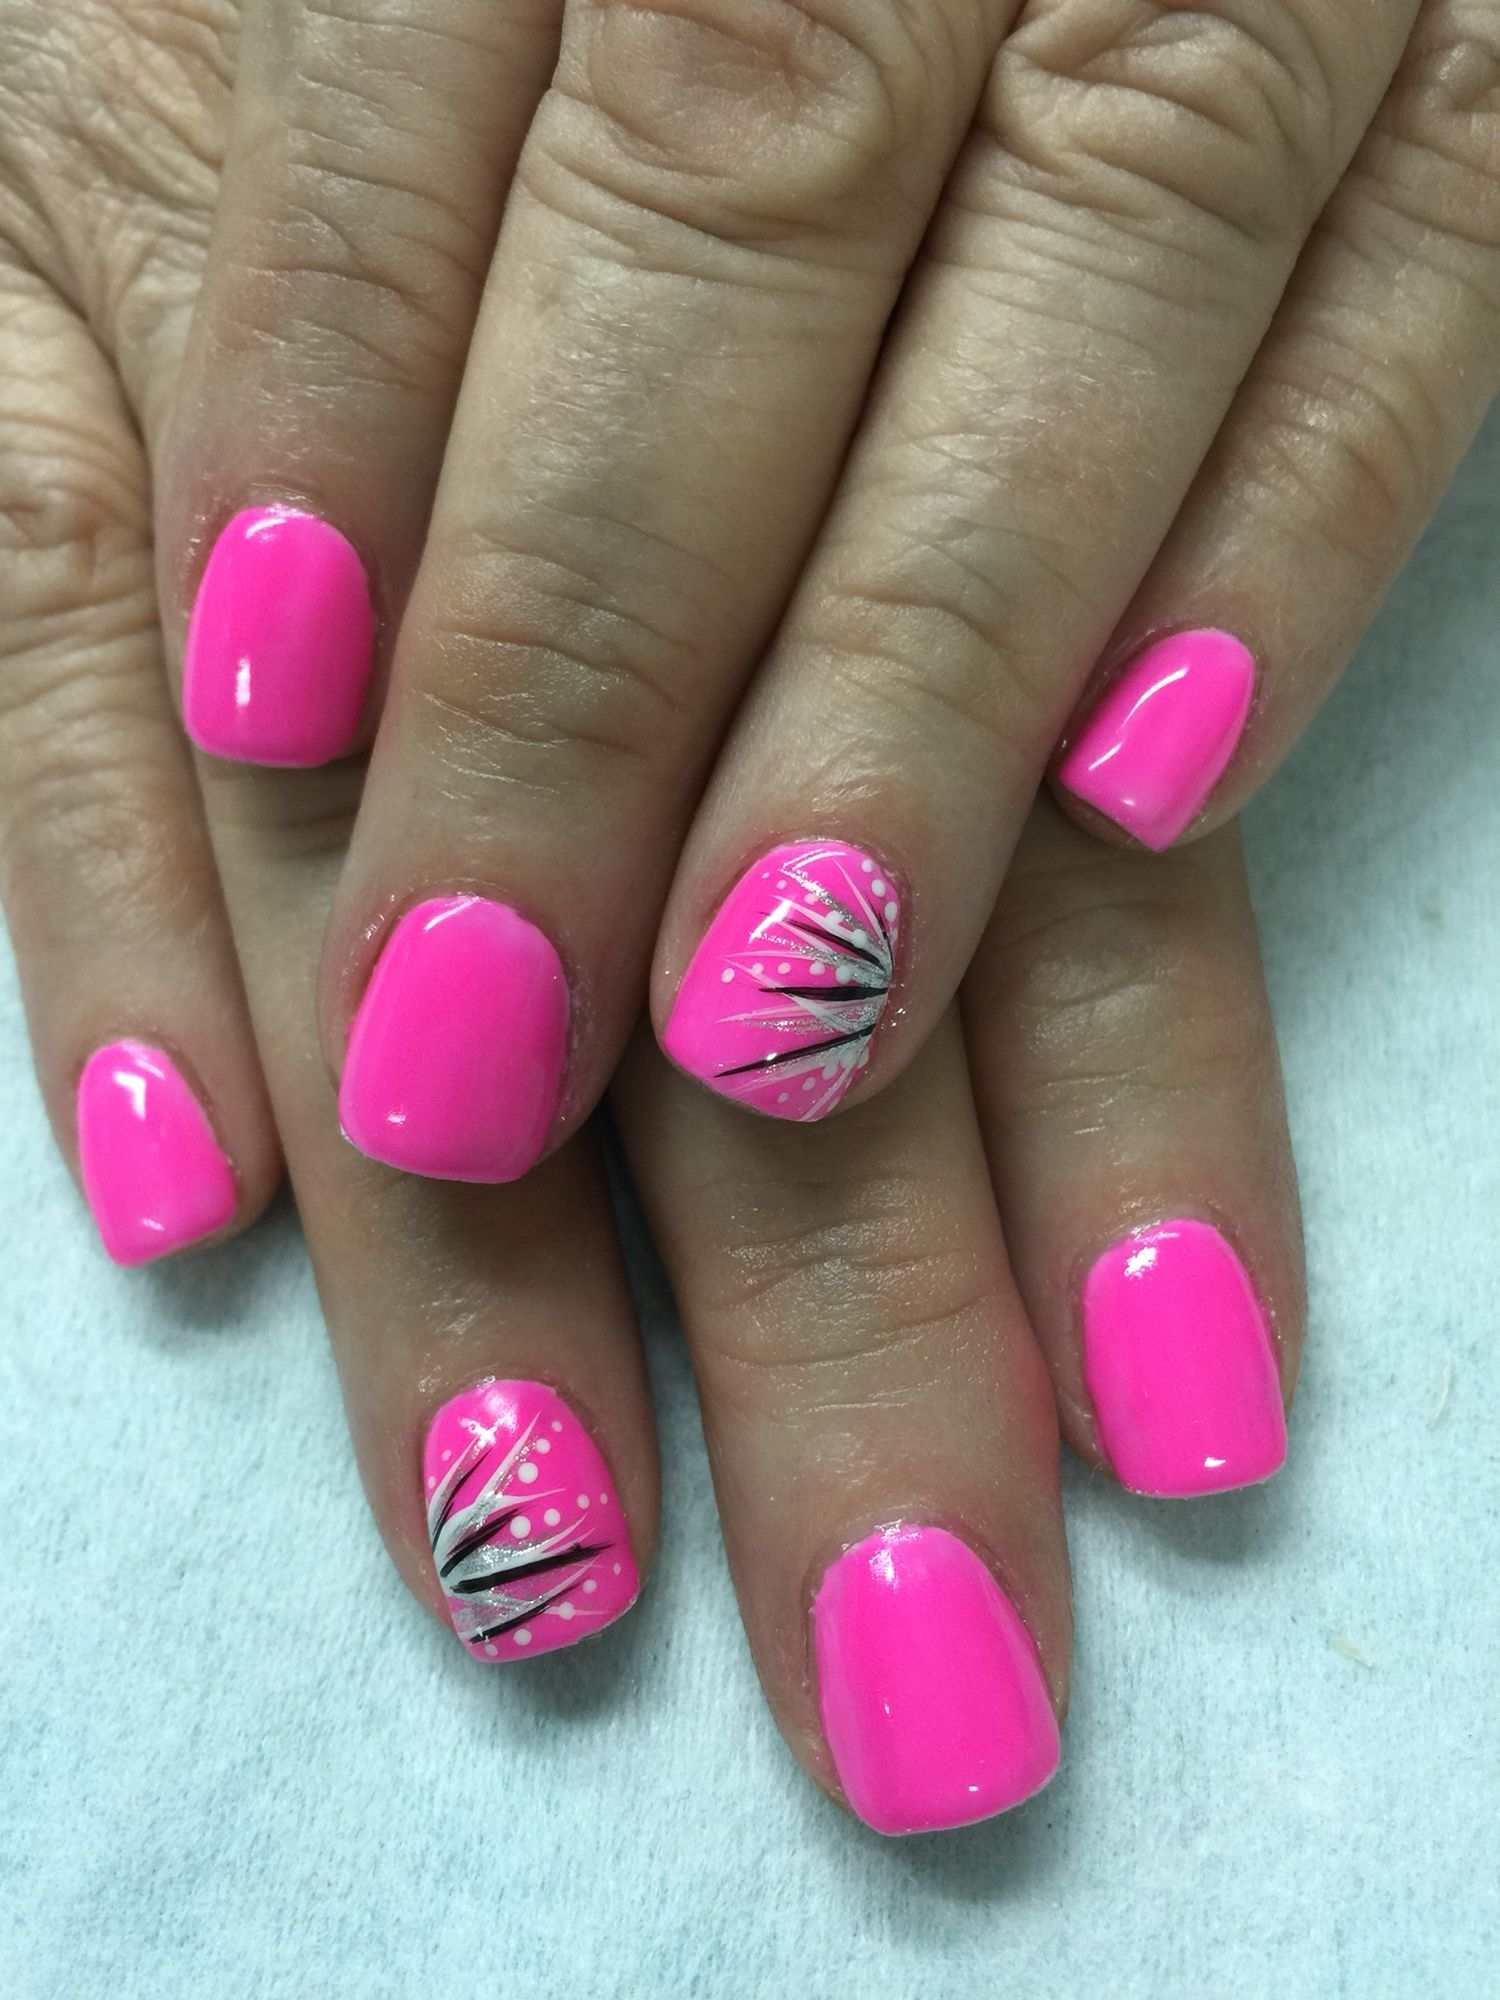 Neon pink with fun accents gel nails gel nail designs neon pink with fun accents gel nails prinsesfo Choice Image